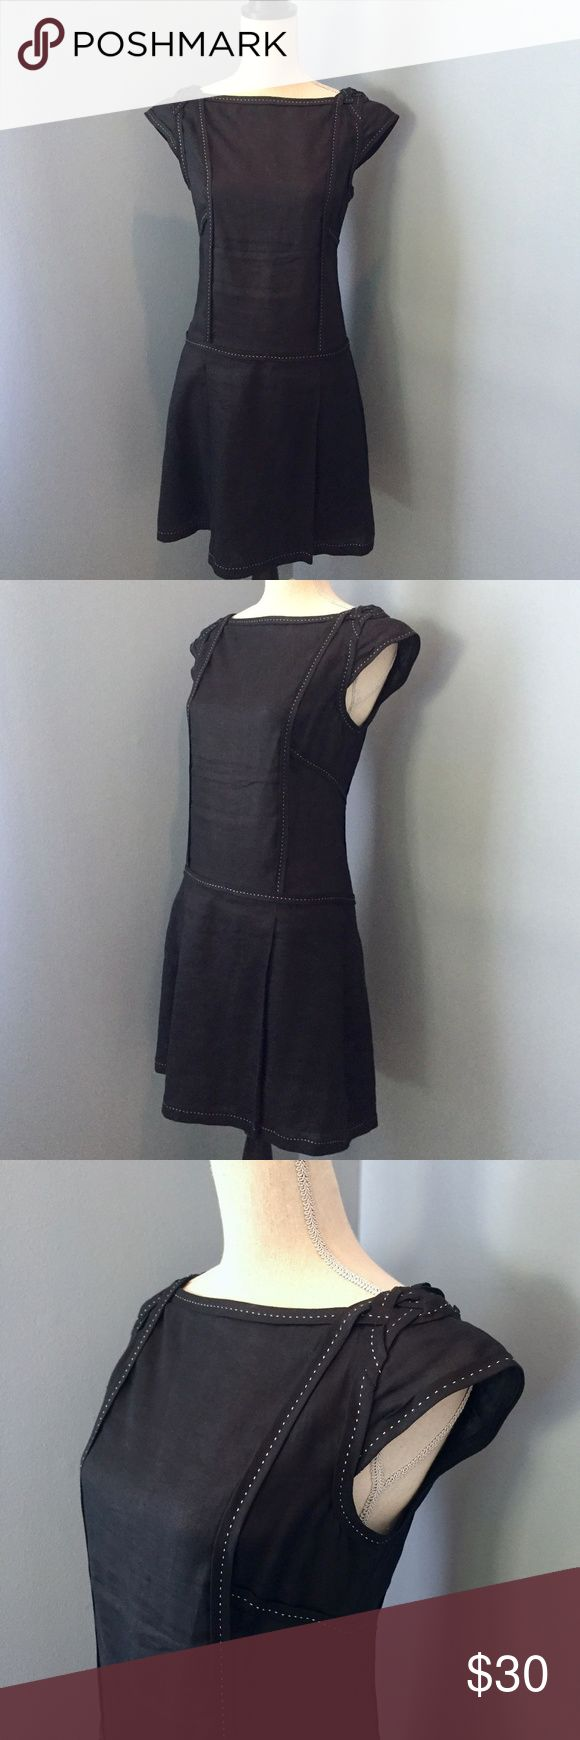 Max Studio Black Linen Cap Sleeve LBD A very refined dress that goes from work to weekend easily. Contrasting stitch detail and braided shoulders gives a casually stylish effect. Wide high boat neck accentuates the neckline, great for wearing your hair back. The double V stitching on the back helps make your figure look slim and streamlined. Good condition. Size 4. Max Studio Dresses